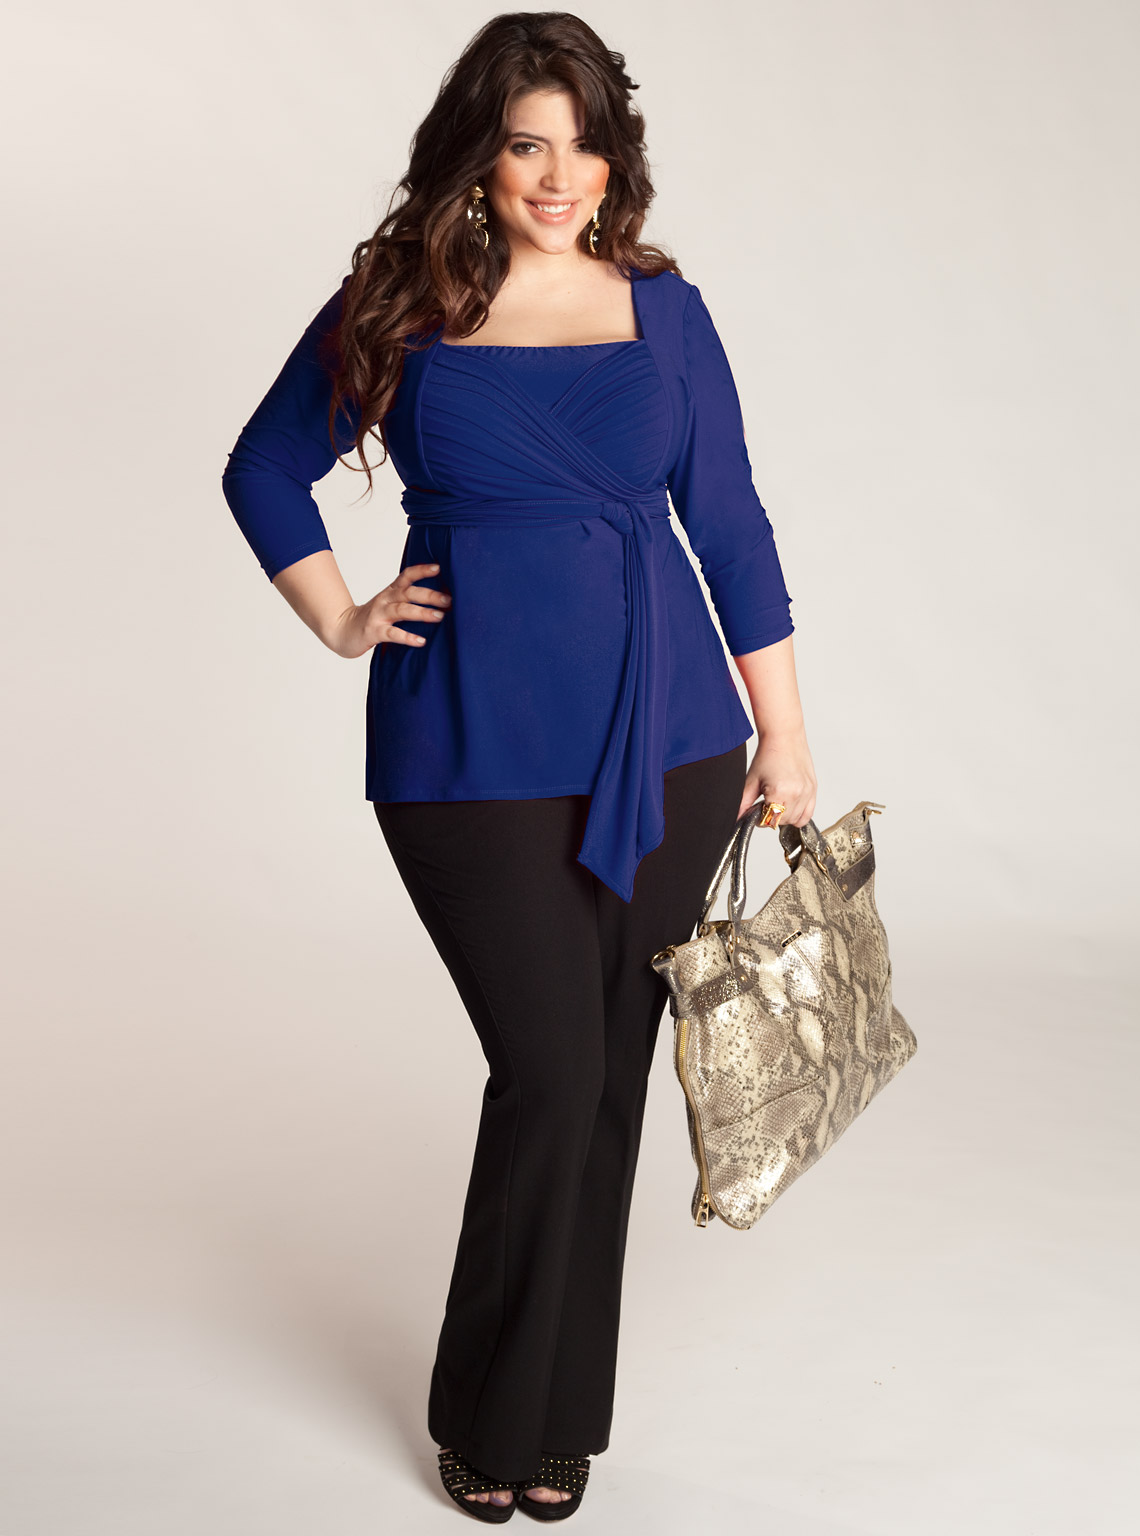 8 Tips For Using Plus Size Fashion Dresses